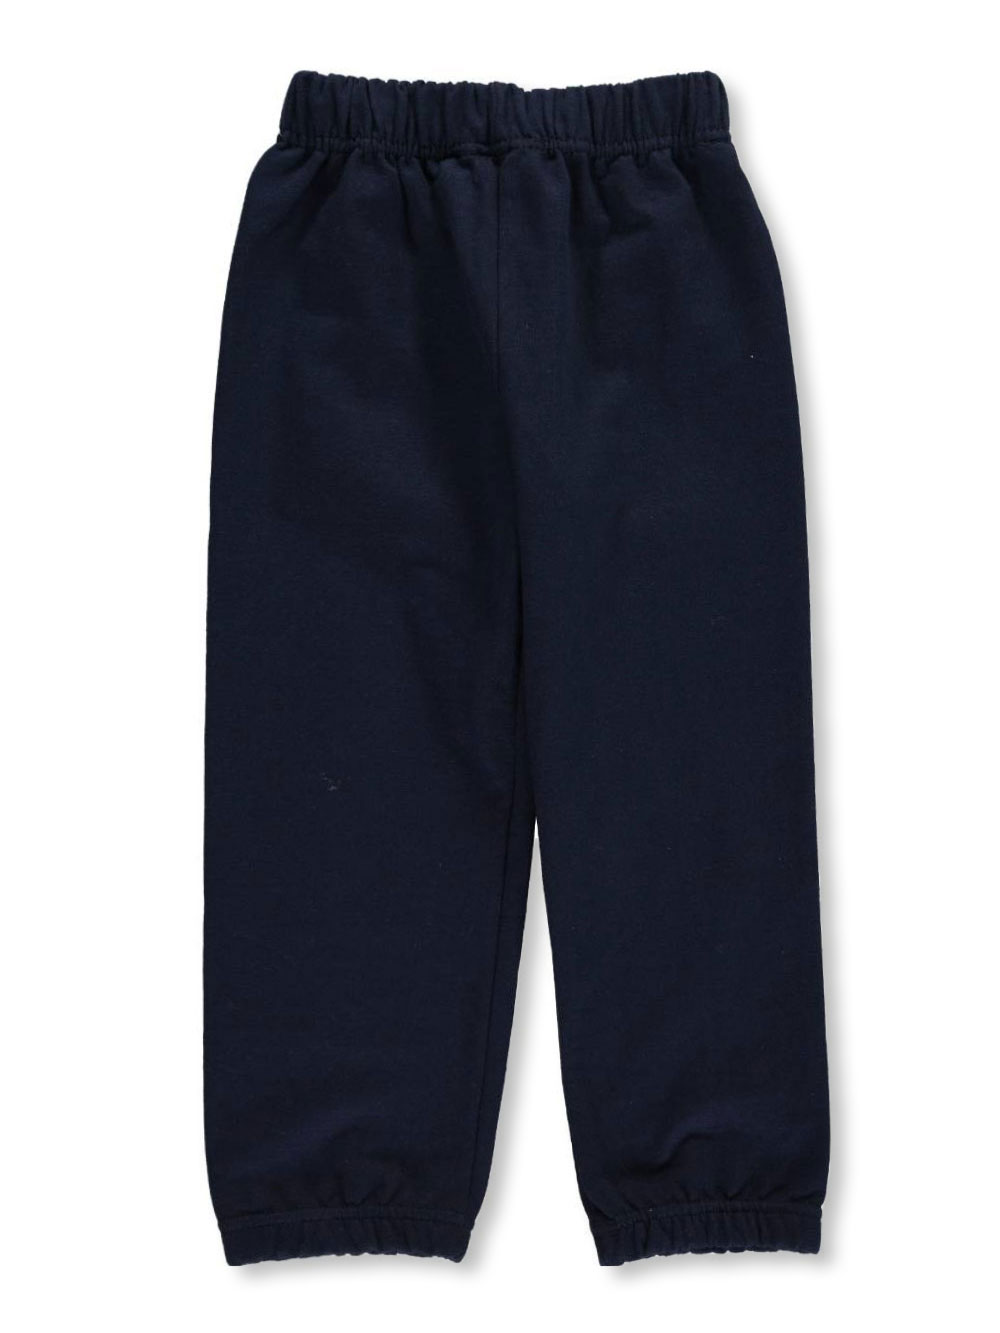 Size 7 Sweatpants for Boys